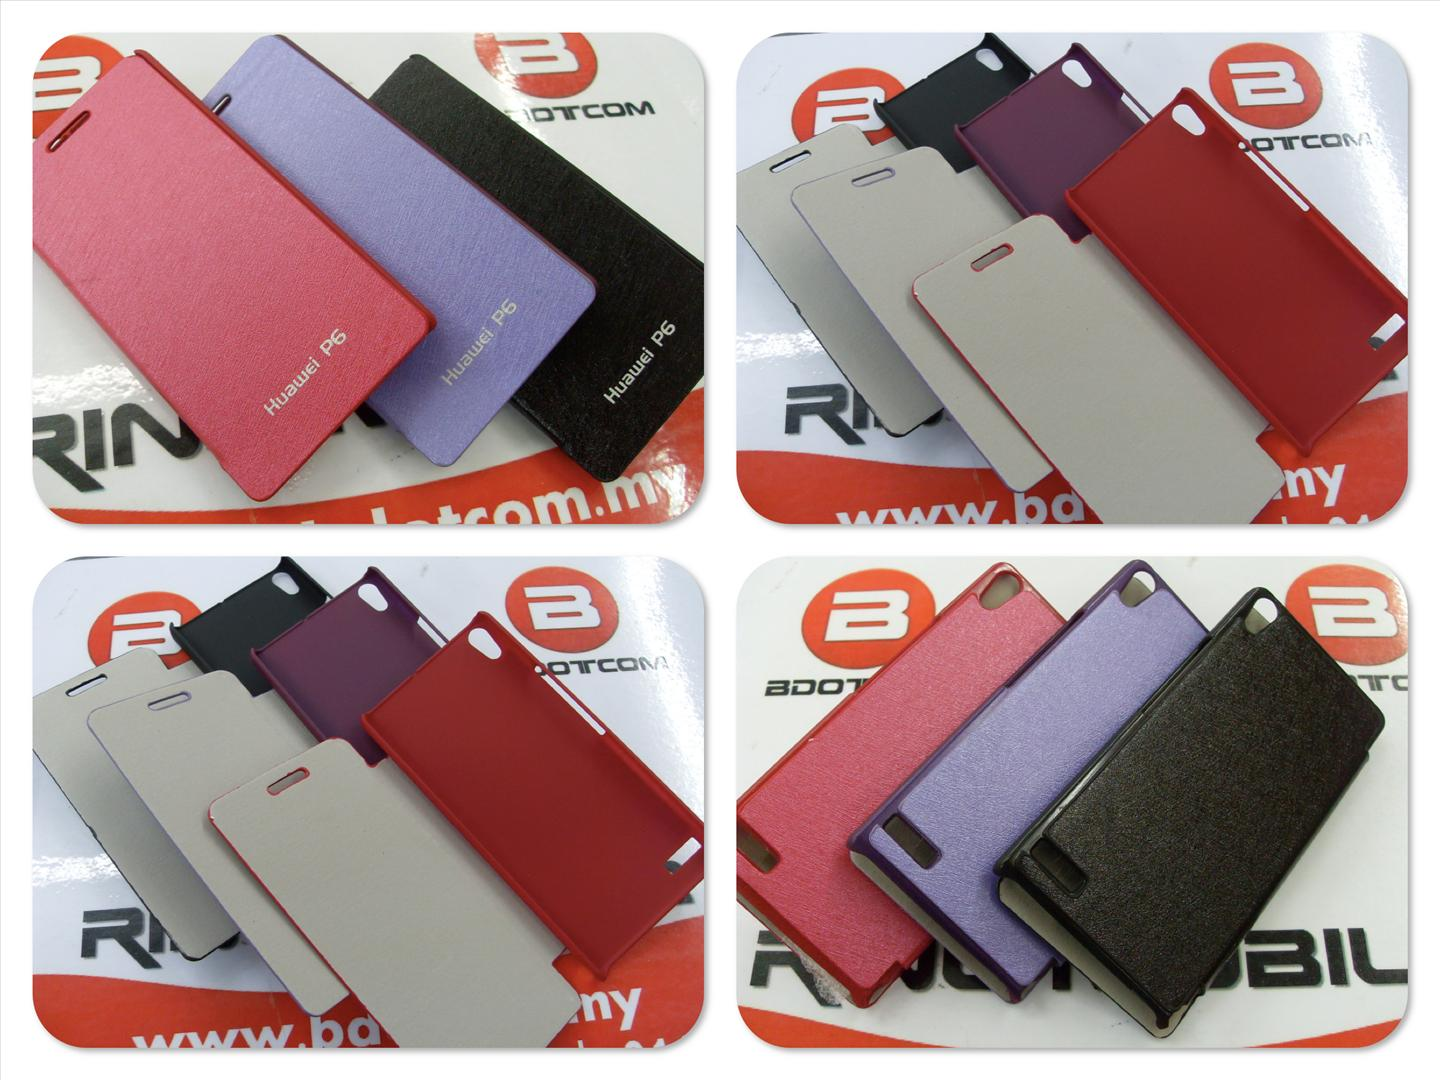 bdotcom = Huawei Ascend P6 leather case =